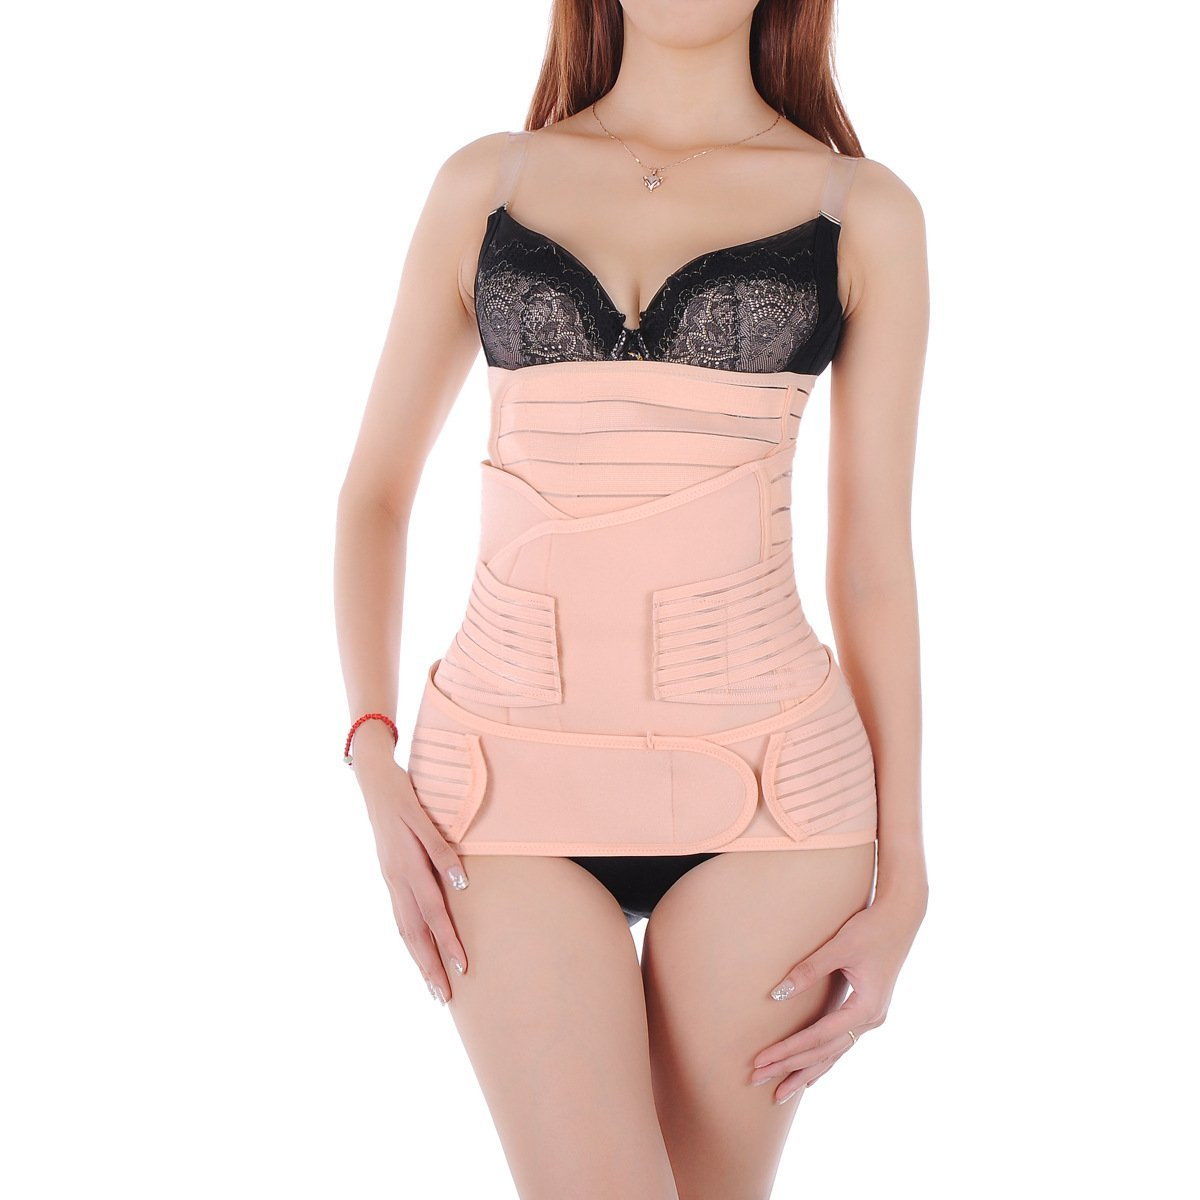 851c0814f3 Amazon.com  AKStore 3 in 1 Postpartum Maternity Supports Slimming Belt